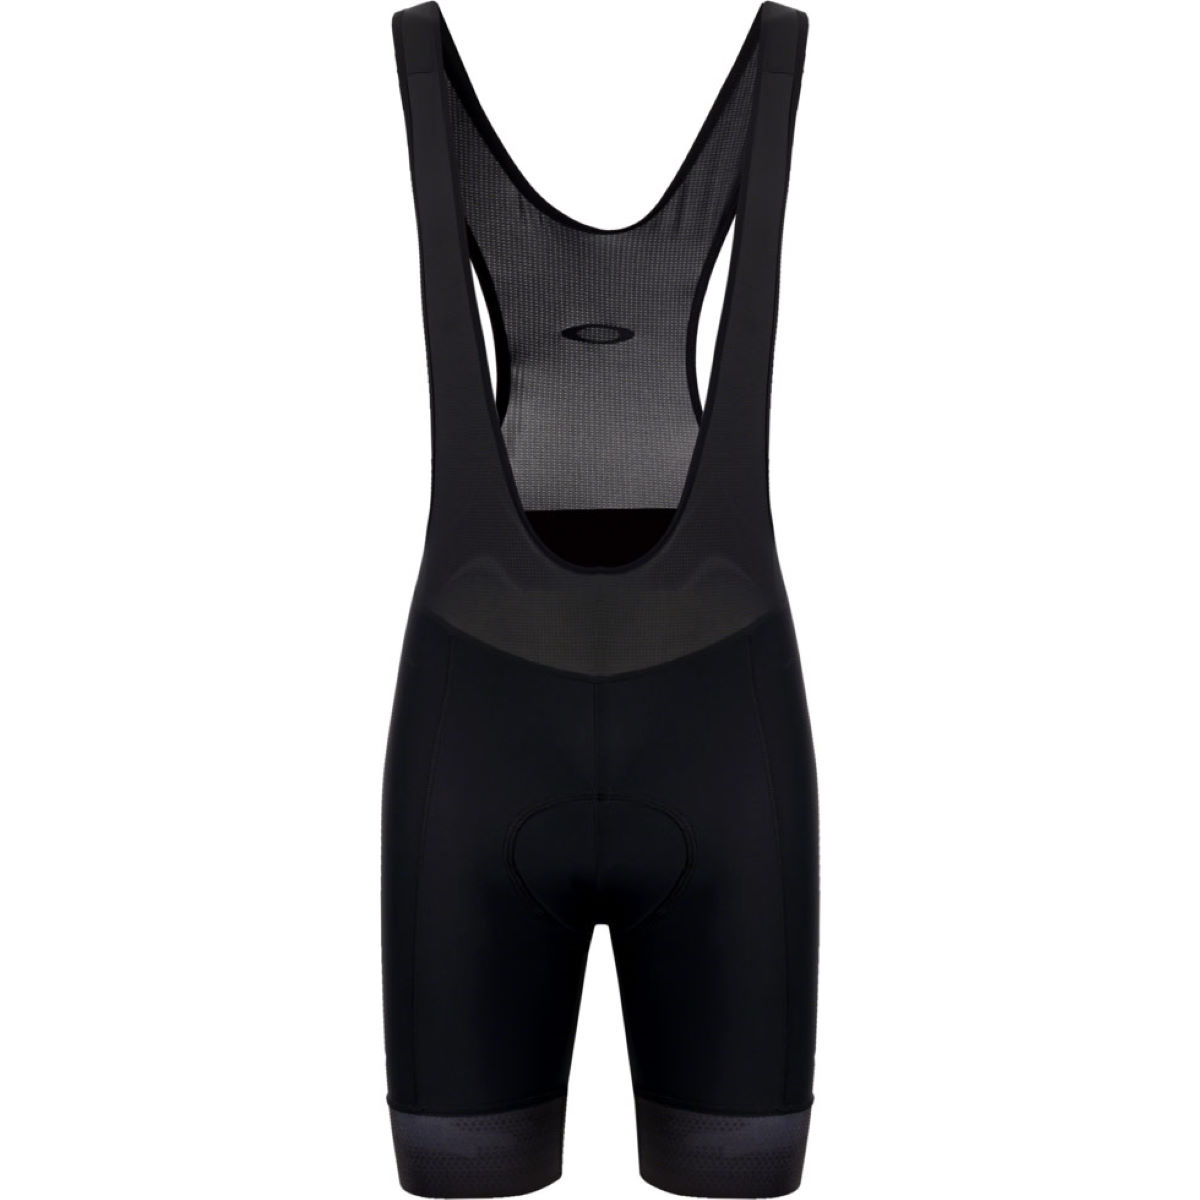 Oakley Jawbreaker Bib Shorts Grey L - XL Black Out